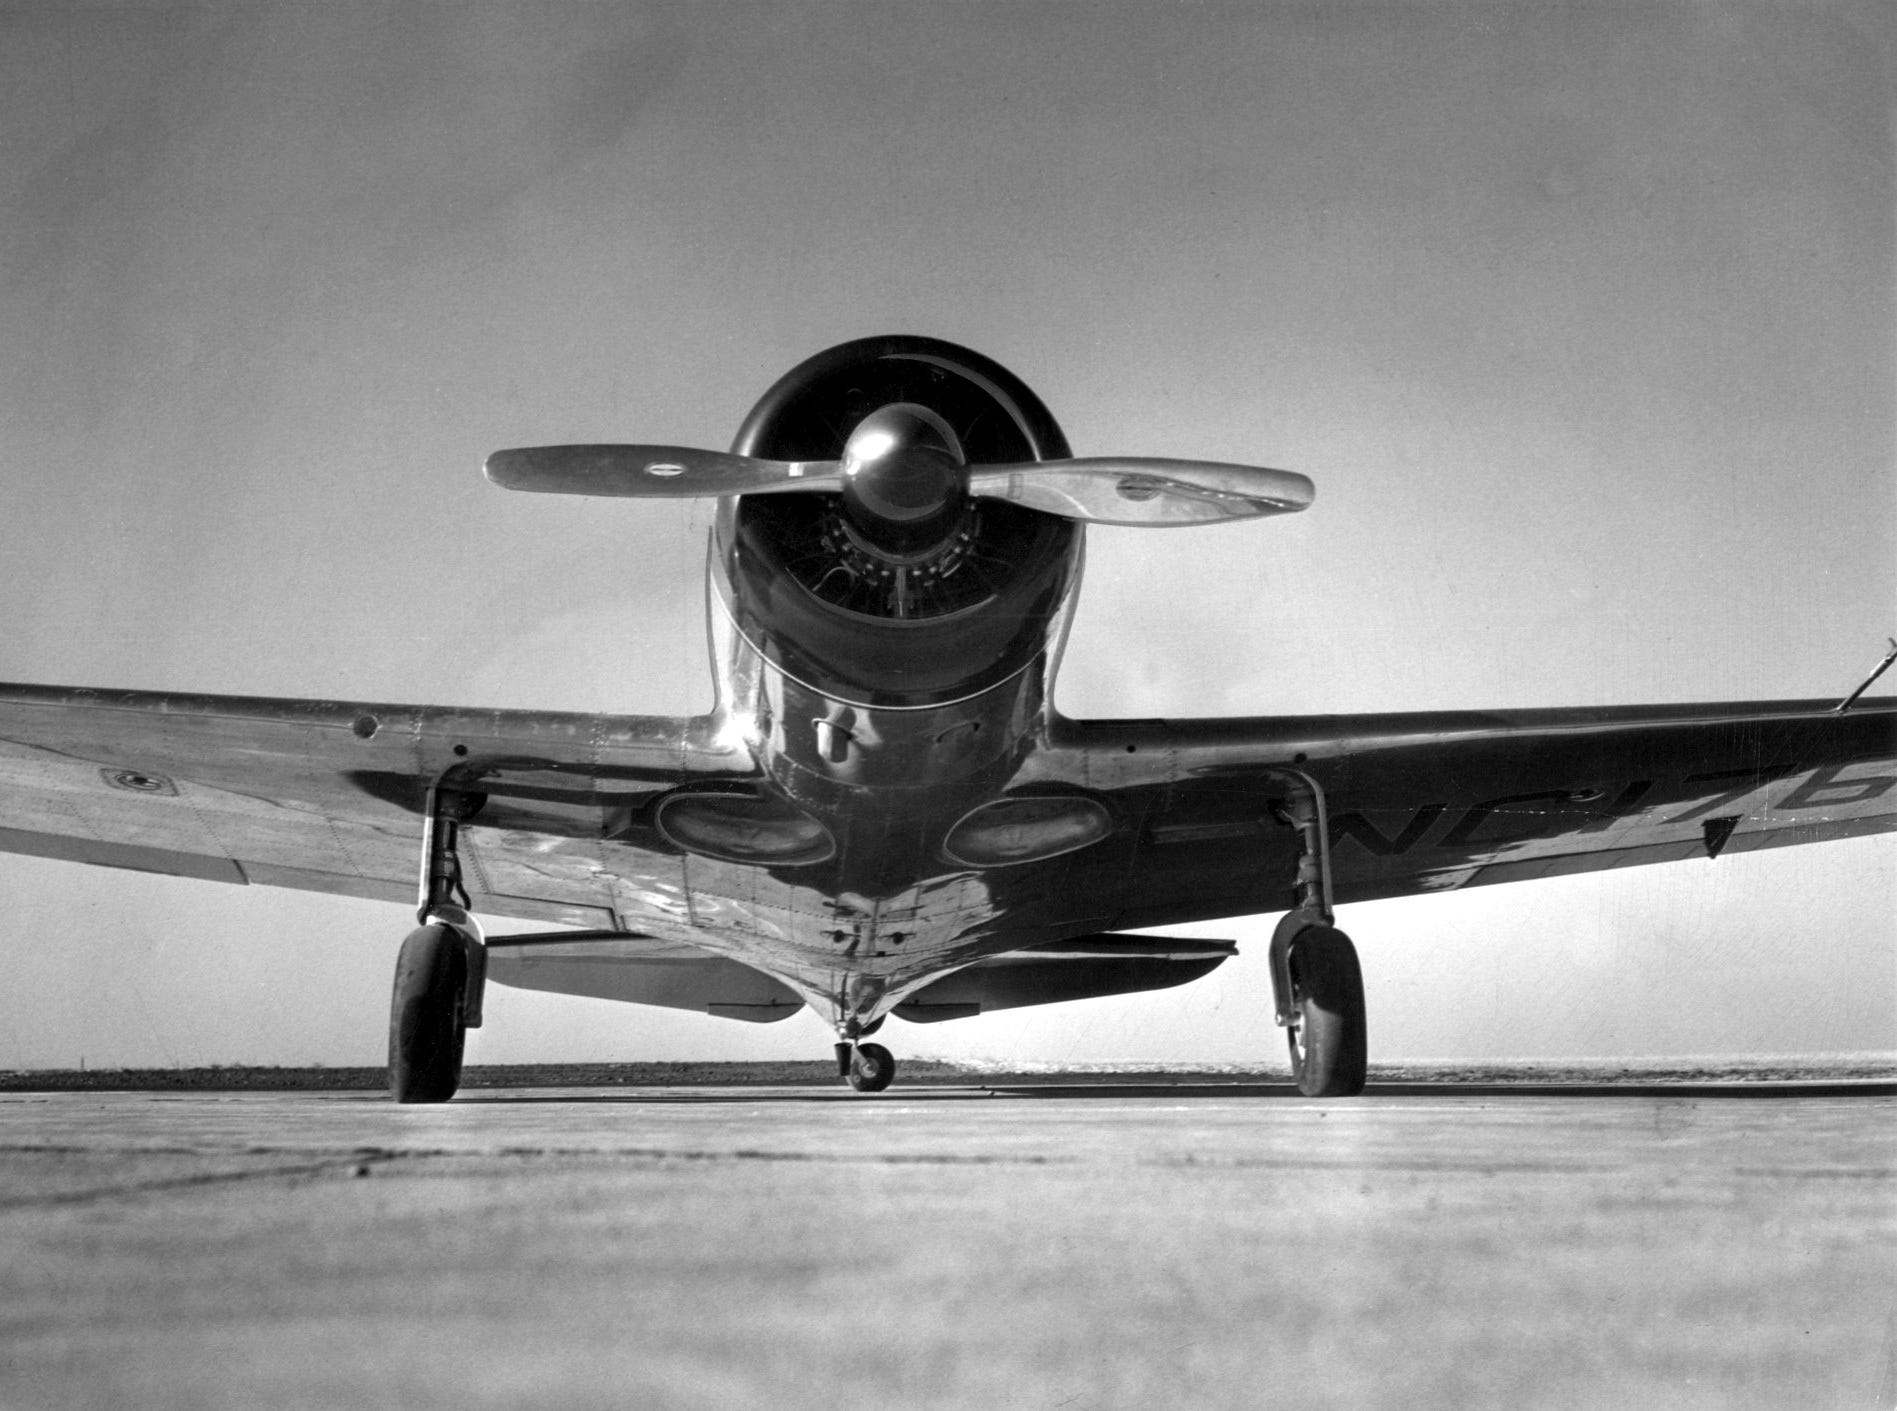 Strong, shiny streamlined and speedy is Good News VII. It is an all-metal, five place Spartan Executive, capable of flying 240 miles an hour, with a cruising range of 1,000 miles.